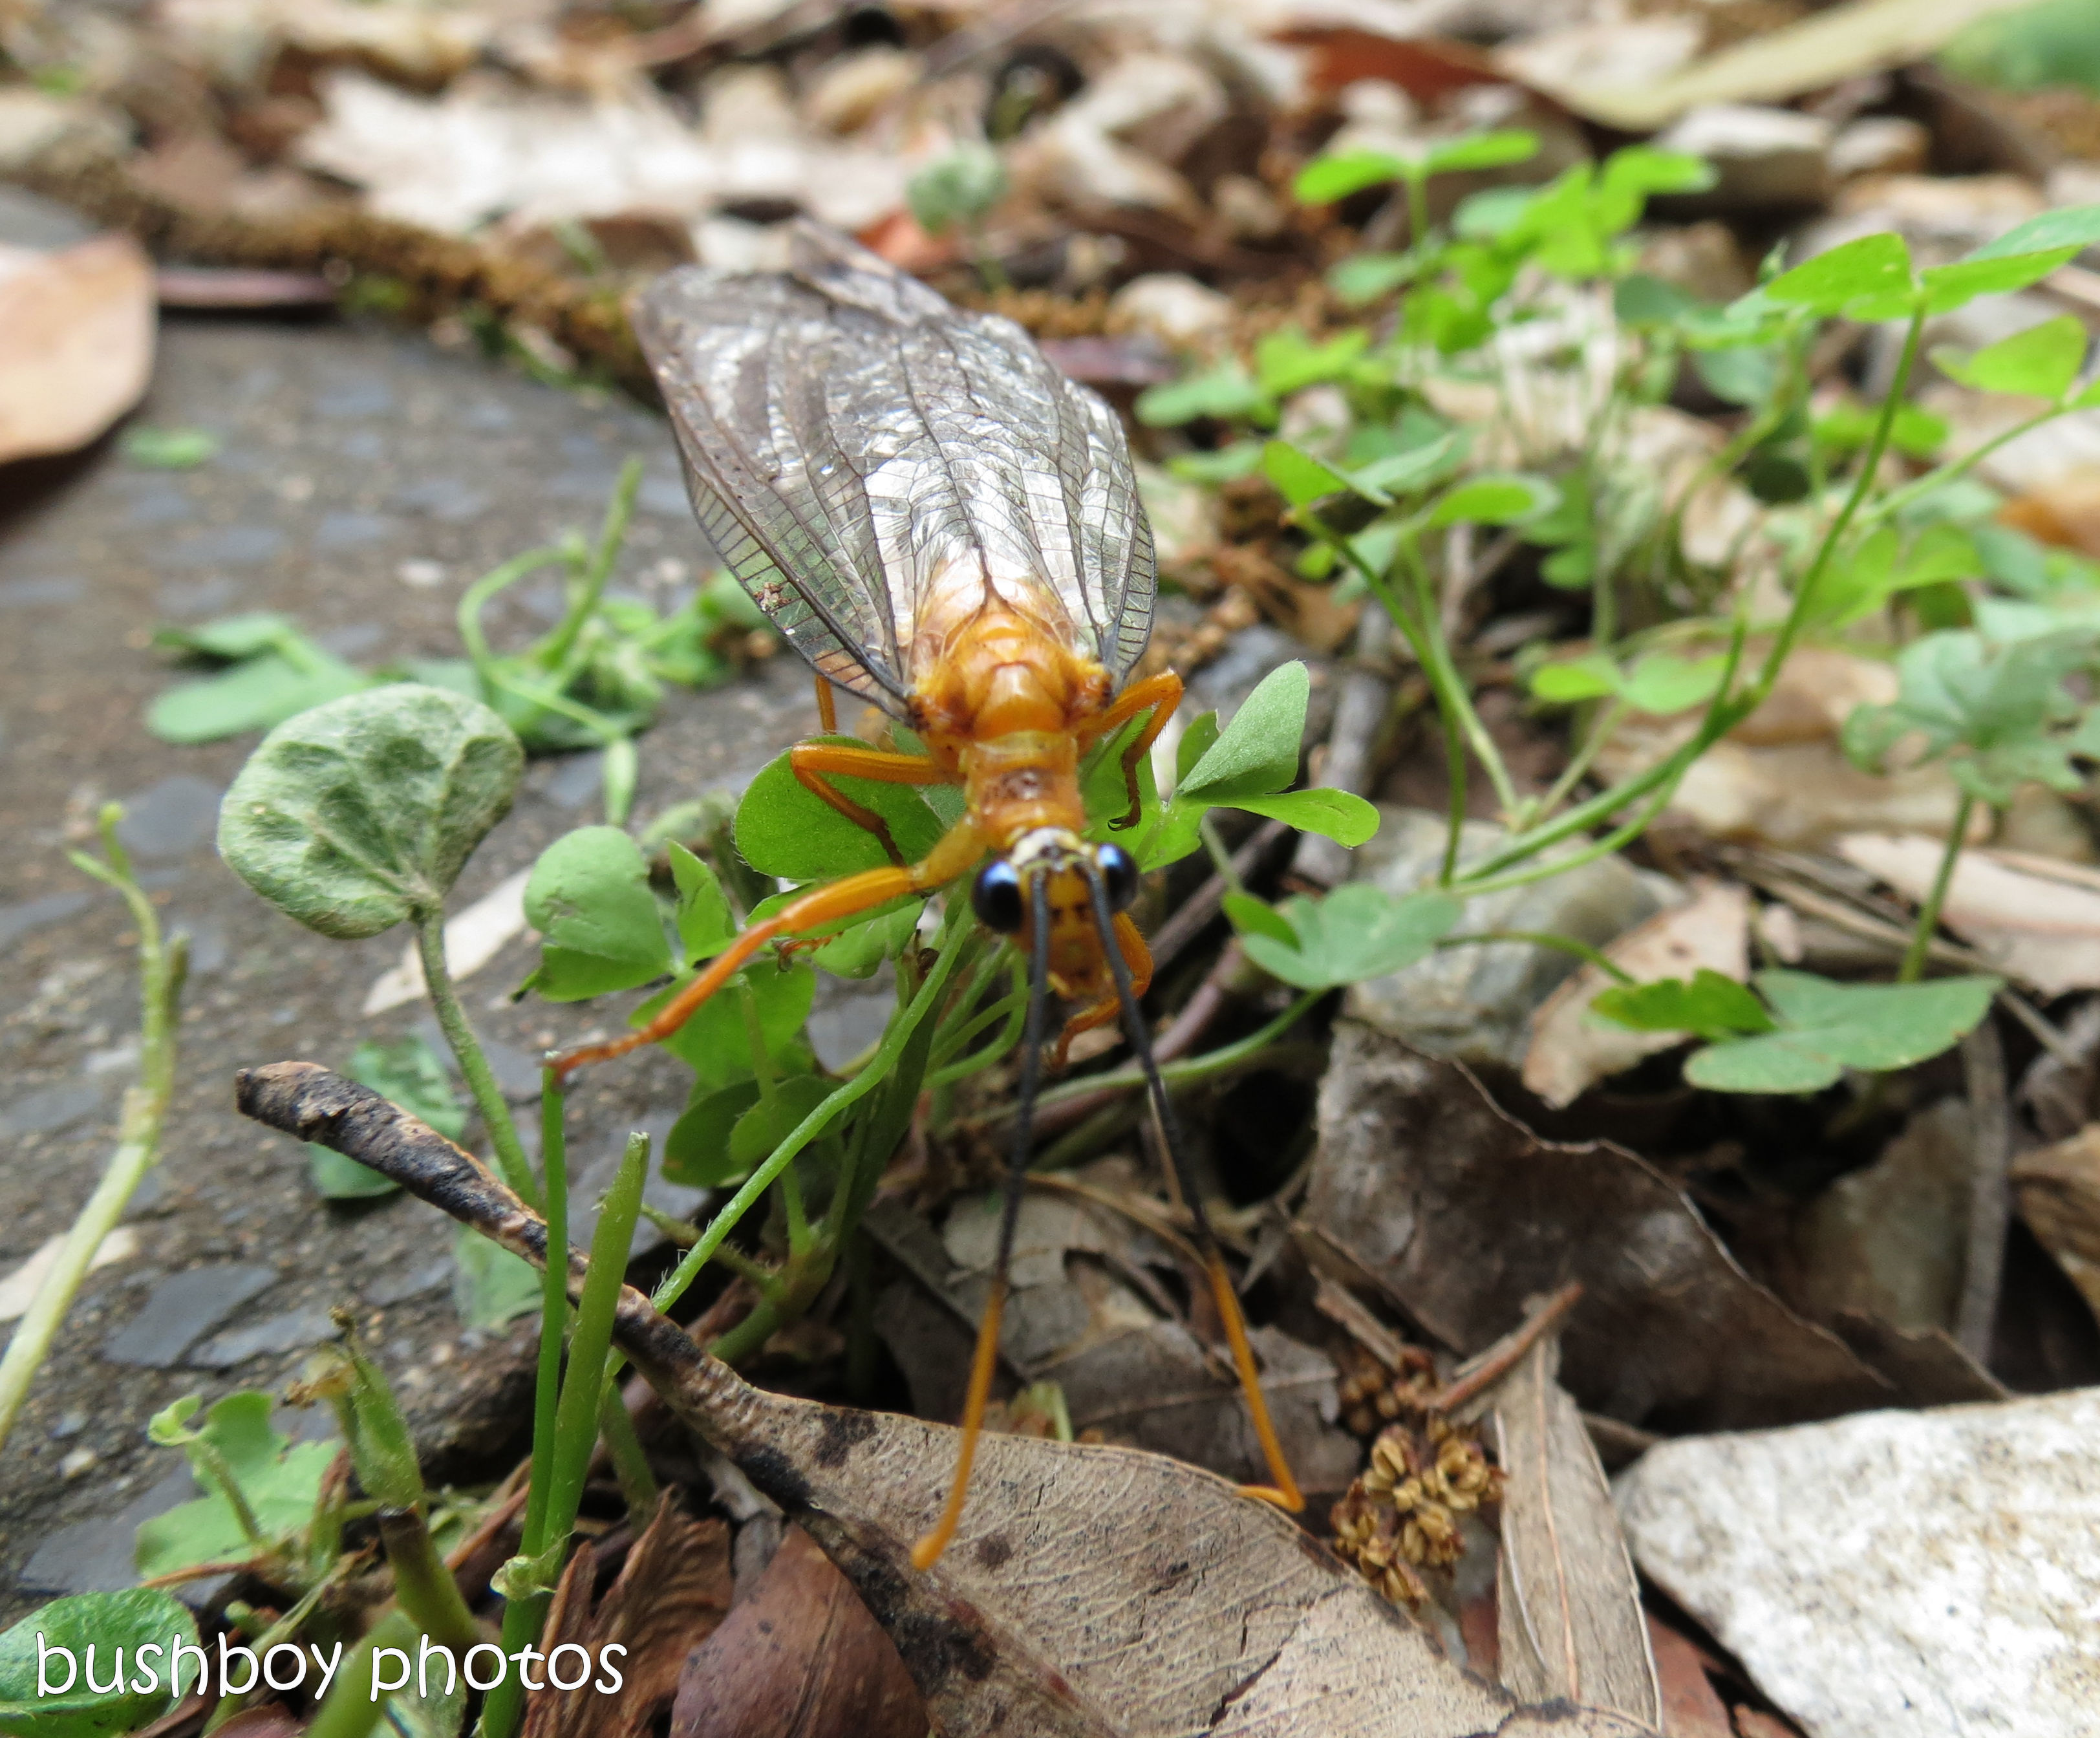 170711_blog challenge_bugs_yellow insect